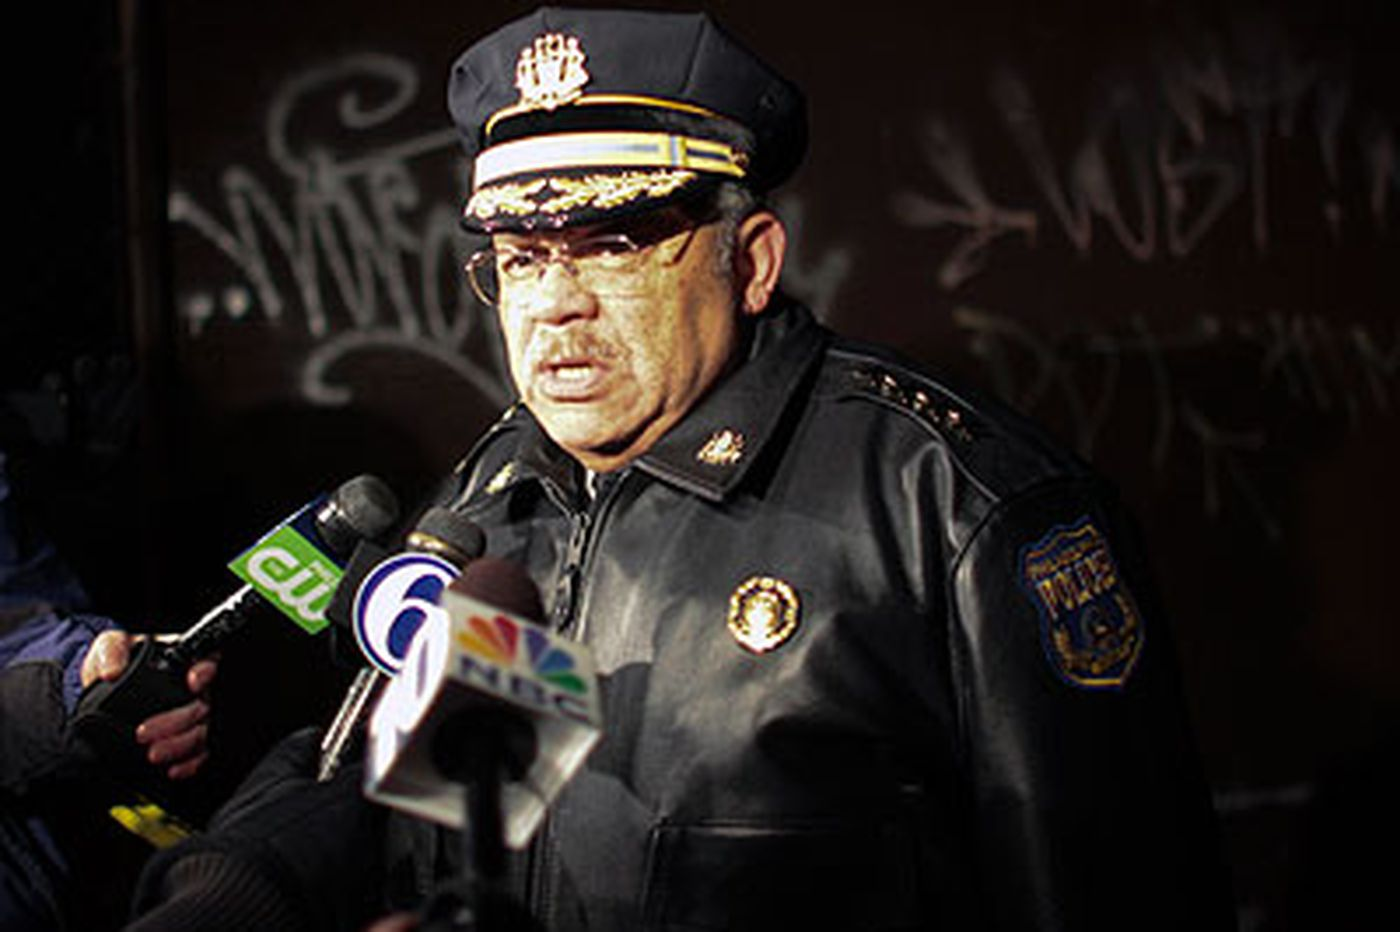 Police commissioner reflects on a rough 2010 as he looks to restore faith in his force